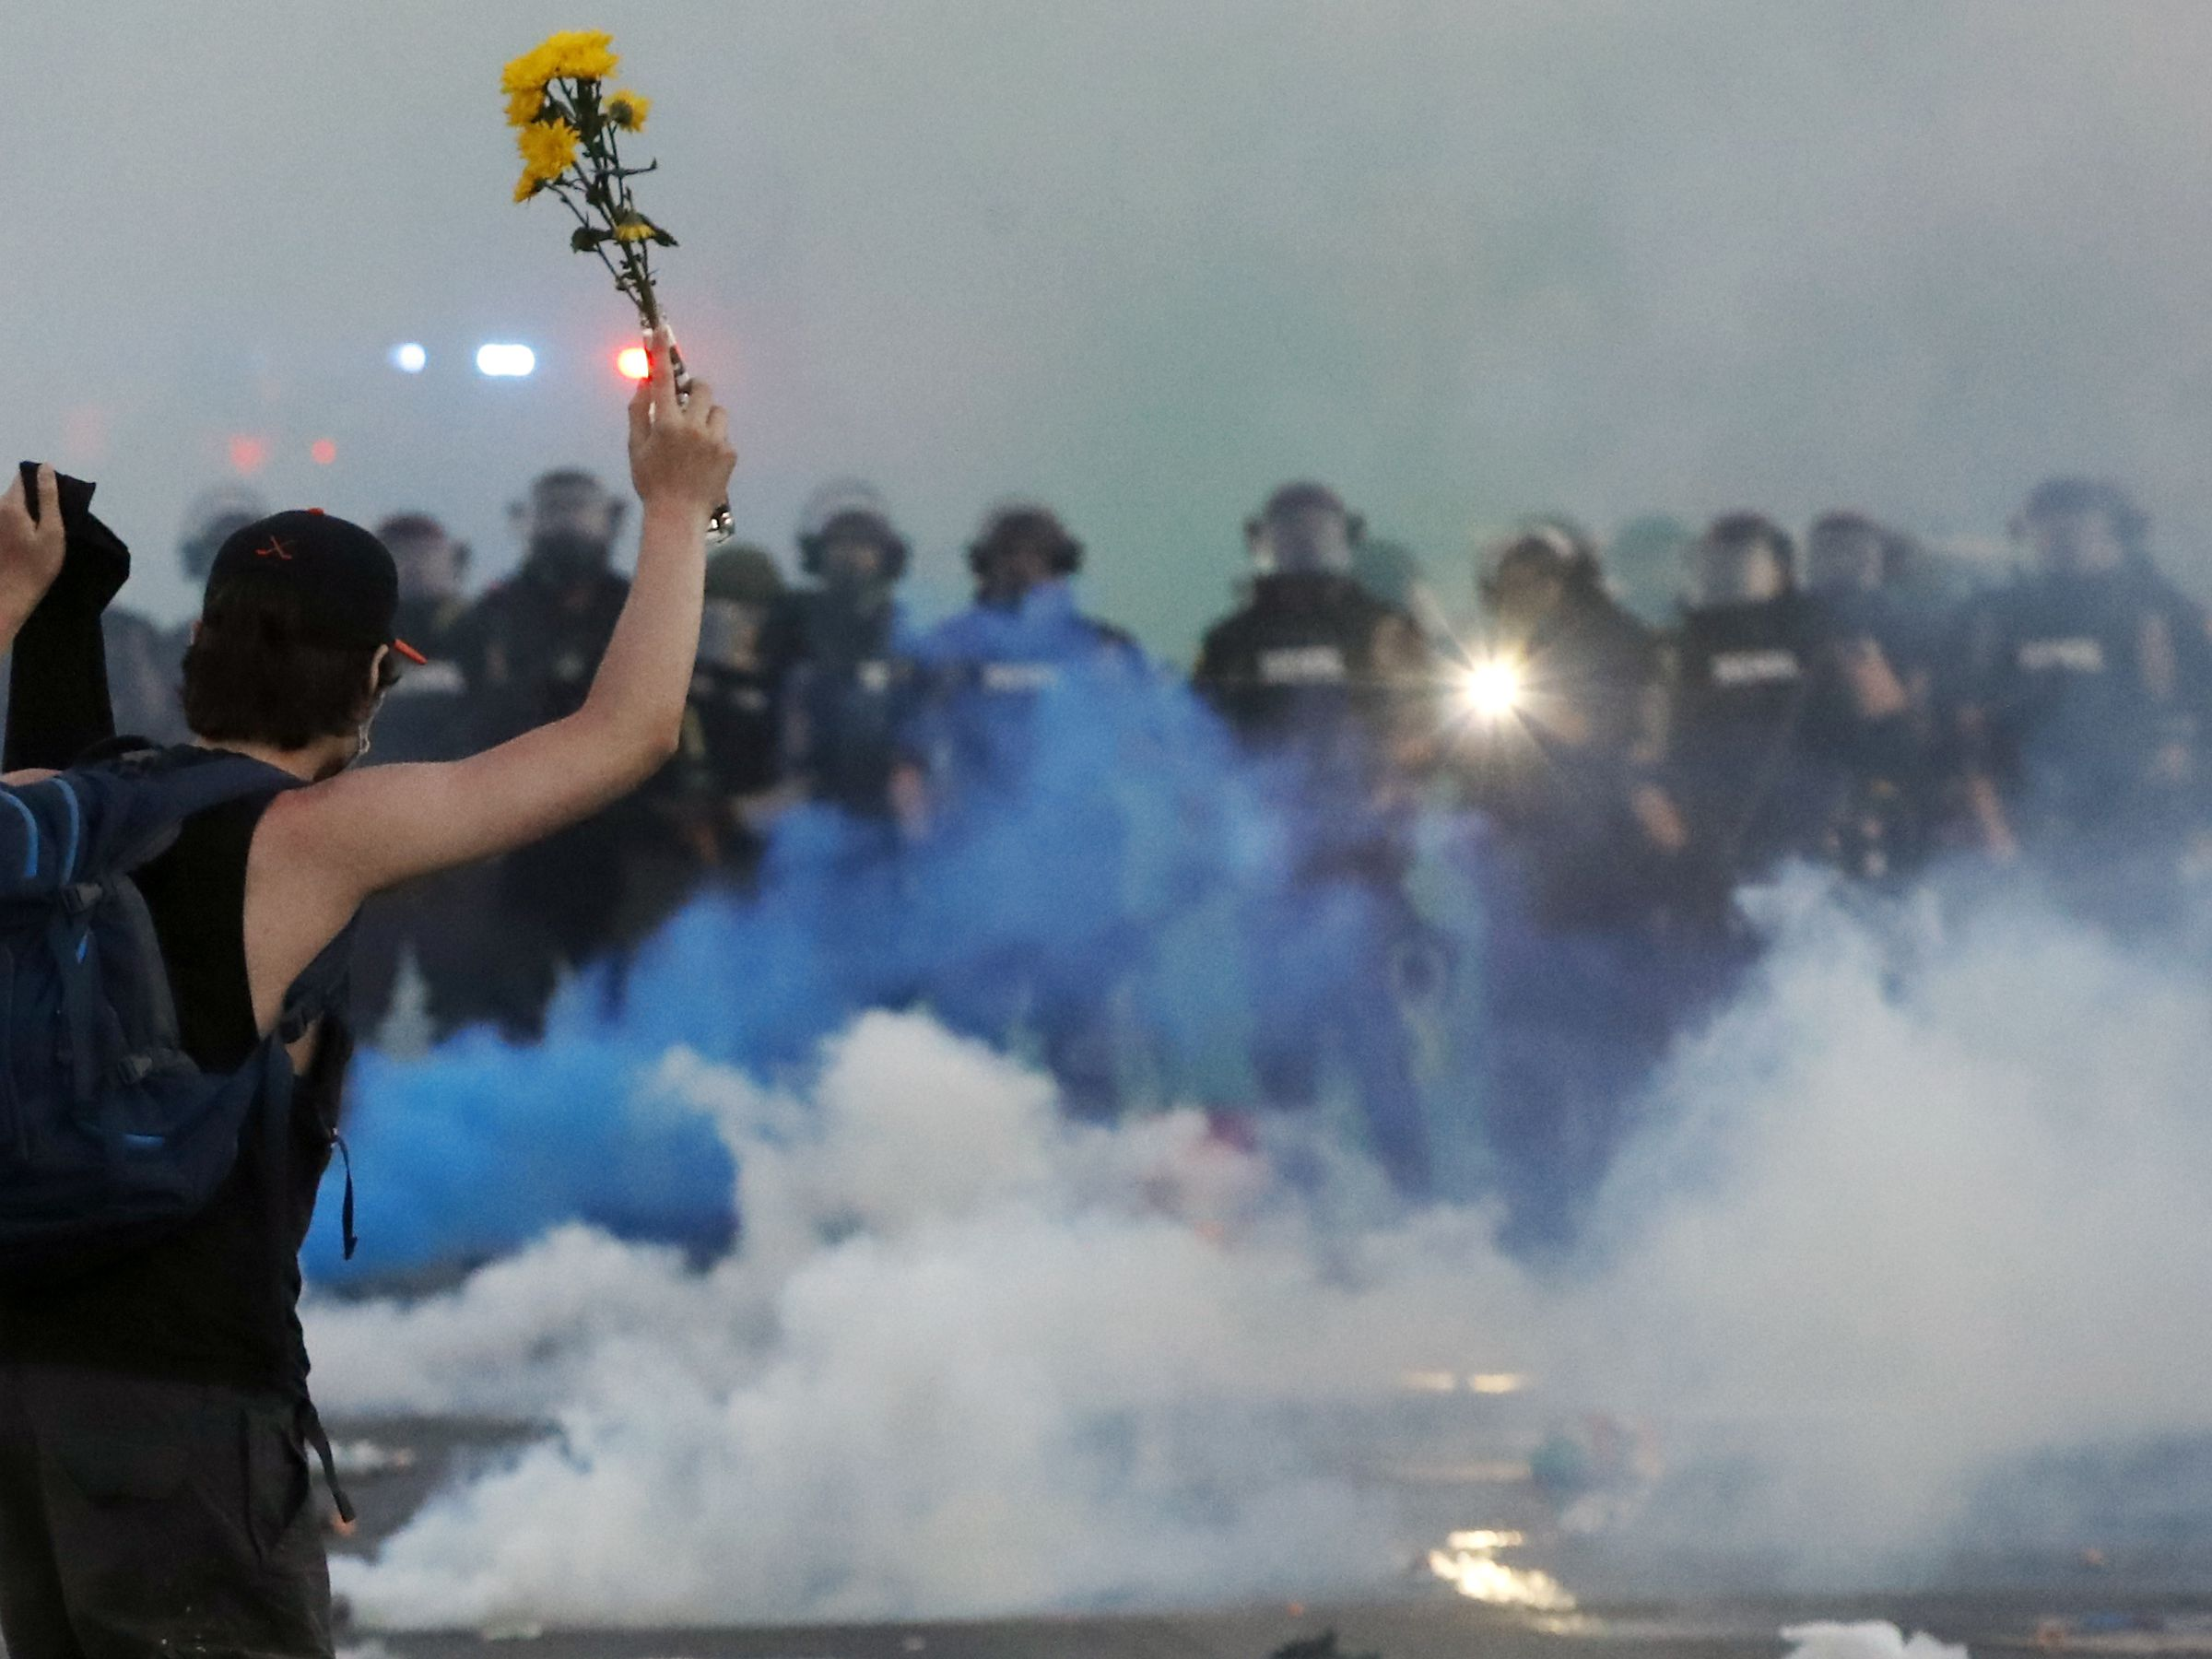 GRAPHIC: Protests flare again in US amid calls to end police violence